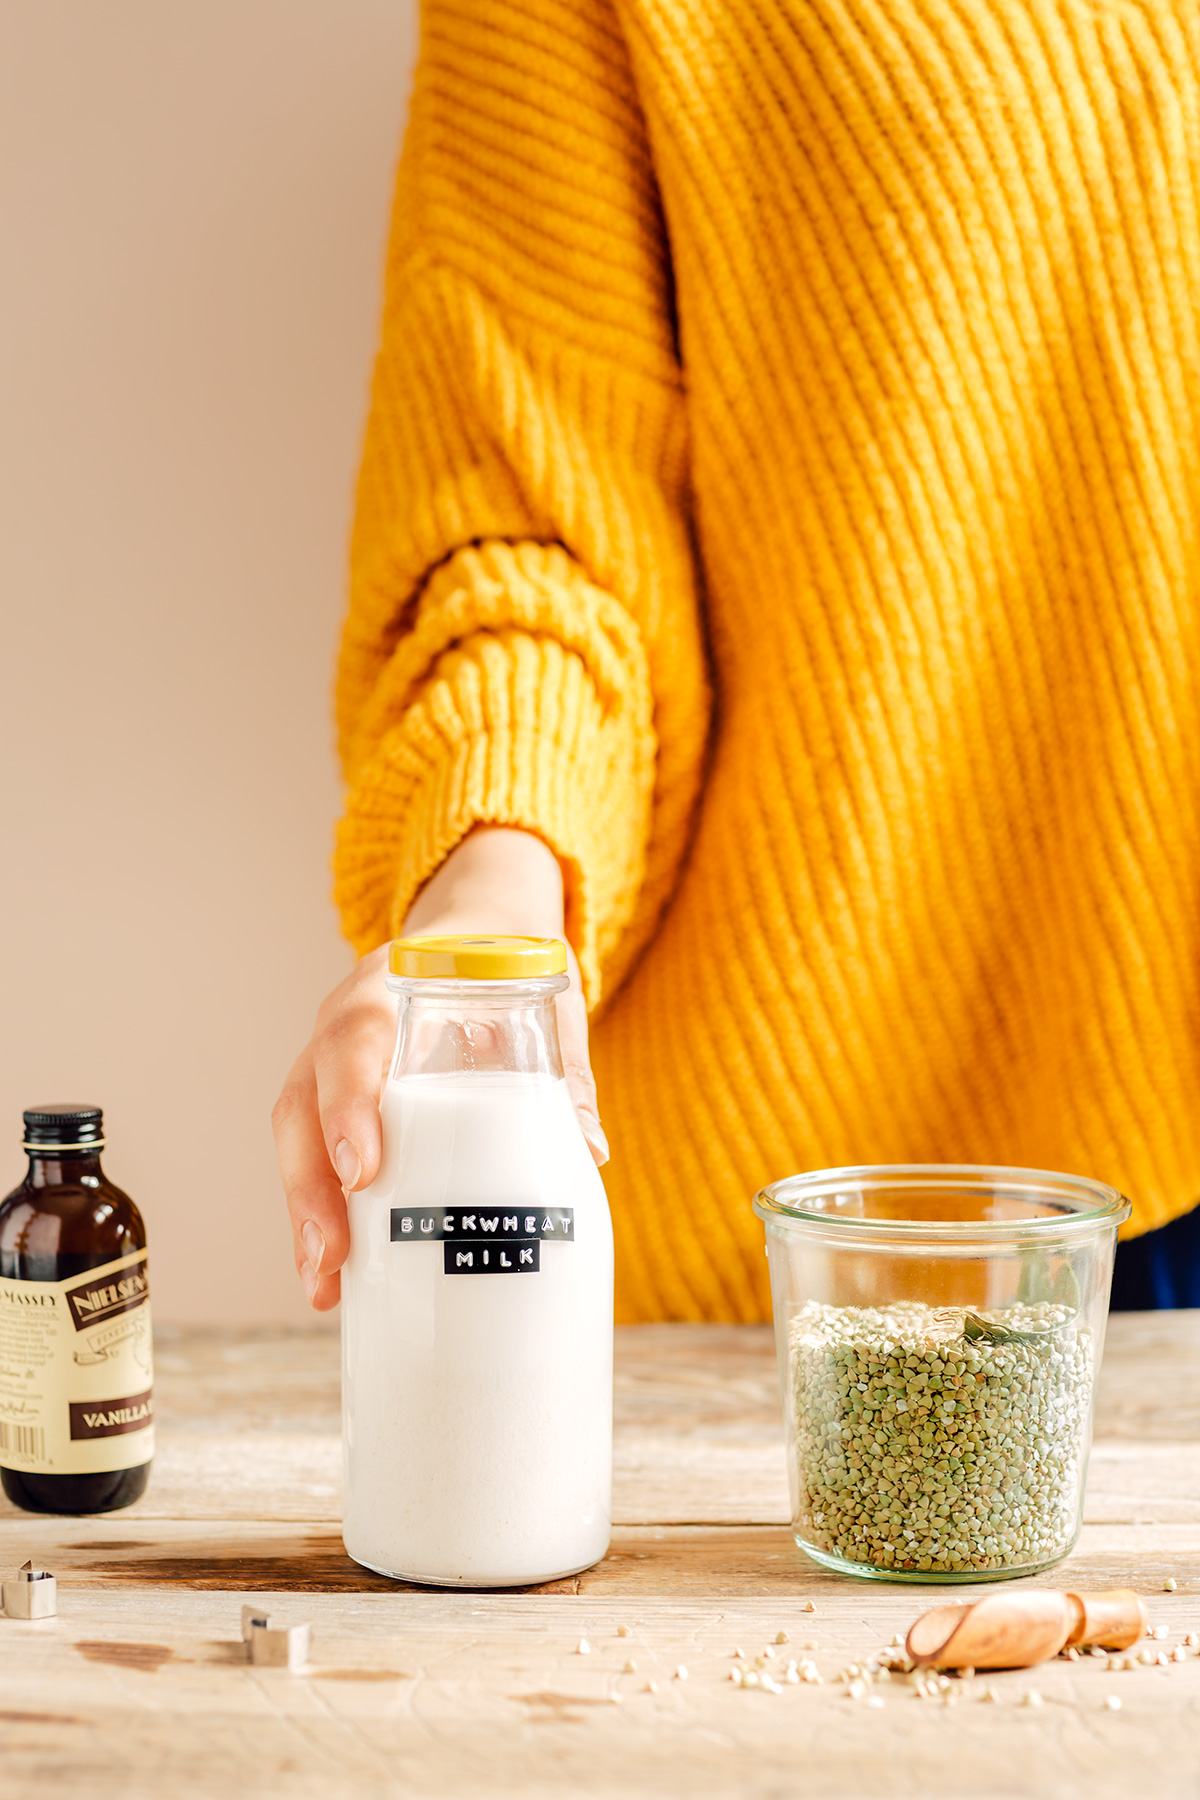 come preparare il LATTE di GRANO SARACENO fatto in casa cremoso ricetta facile veloce How to make BUCKWHEAT MILK at home with slow juicer #dairyfree milk glutenfree vegan